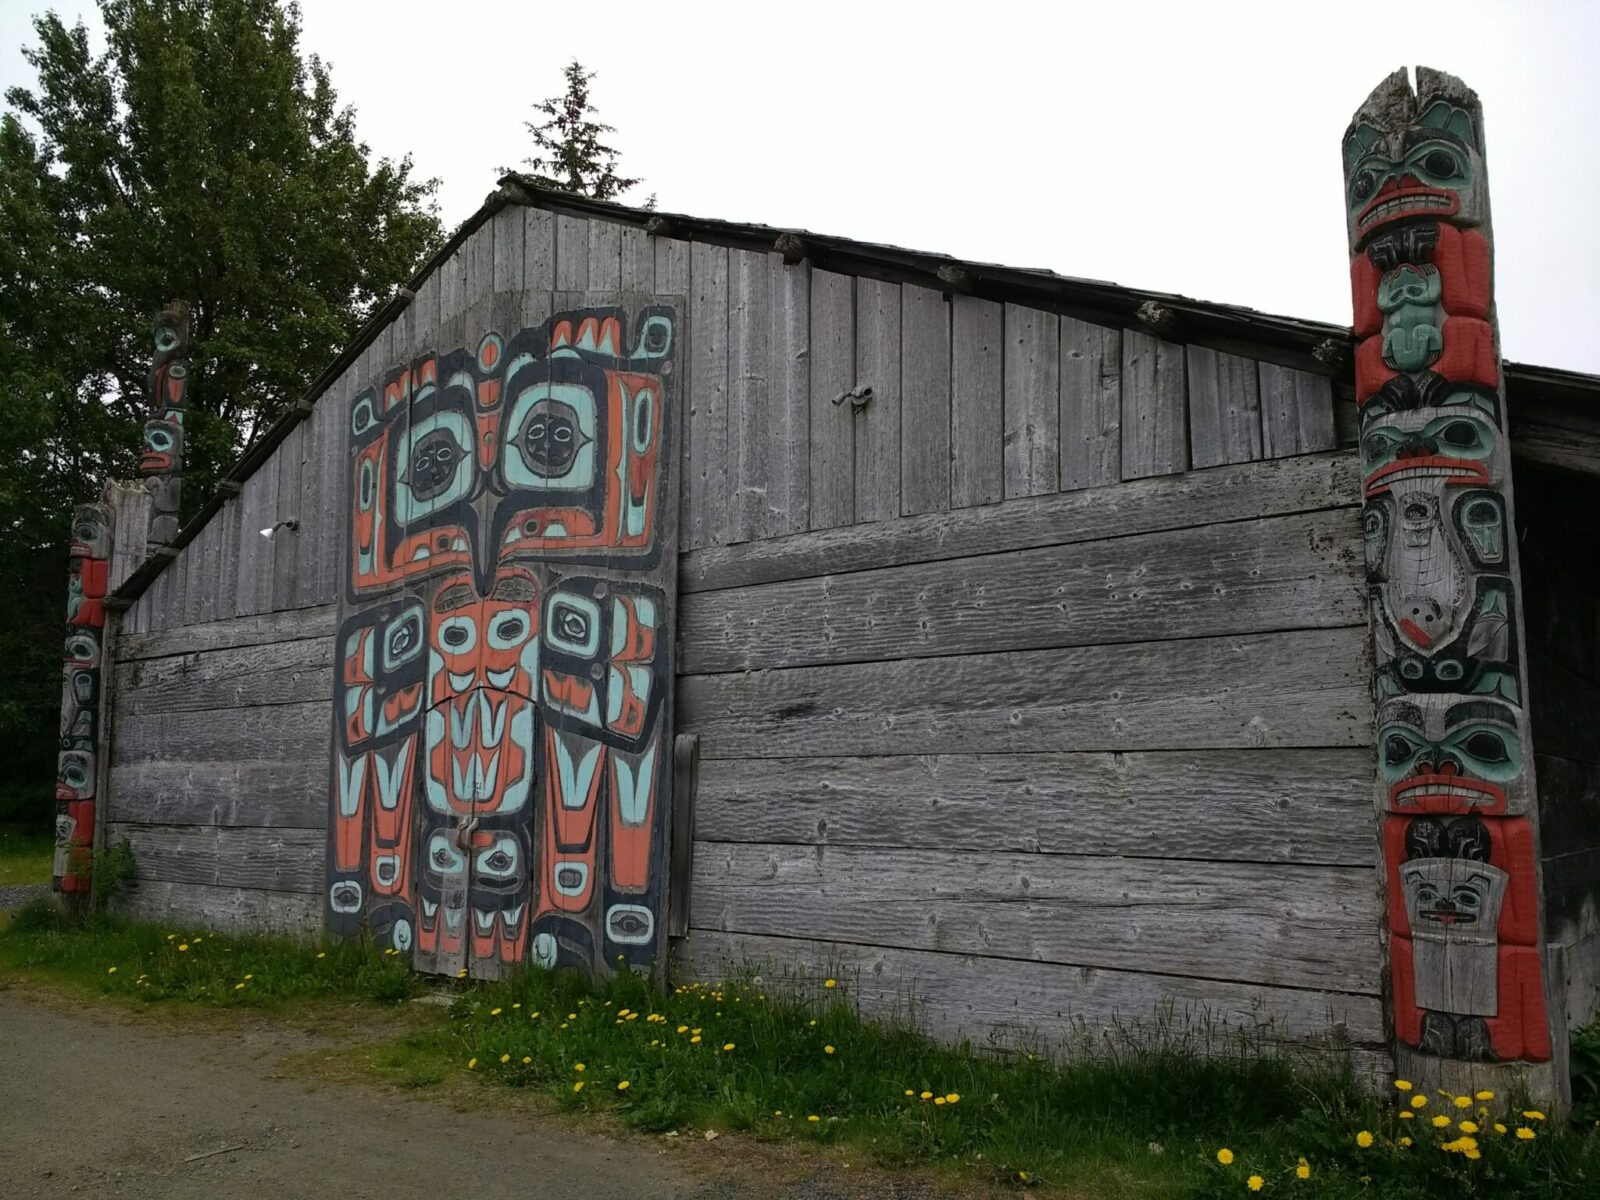 A traditional Chilkat tribal house. It is large, one story and made of weathered wood. On the outside is a house screen, a large flat piece of art that goes on a wall. Next to it are two house poles, which are like totem poles but shorter and on the corners of a house. There is also a totem pole behind the house next to a tree